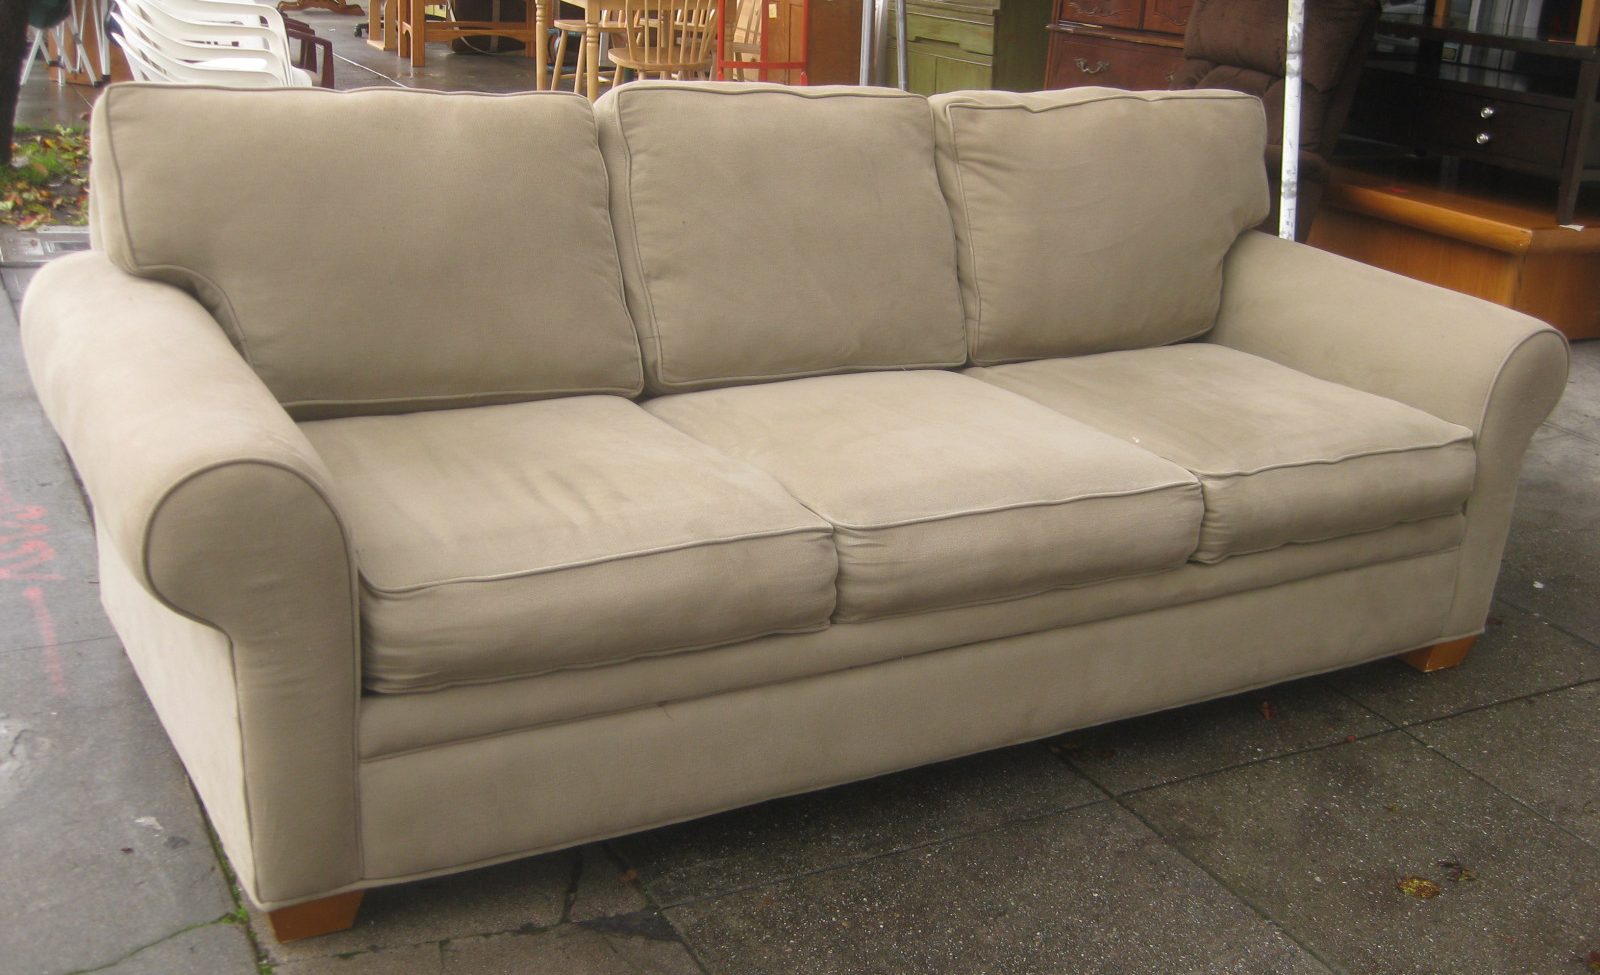 UHURU FURNITURE u0026 COLLECTIBLES: SOLD - Beige Sofa - $90